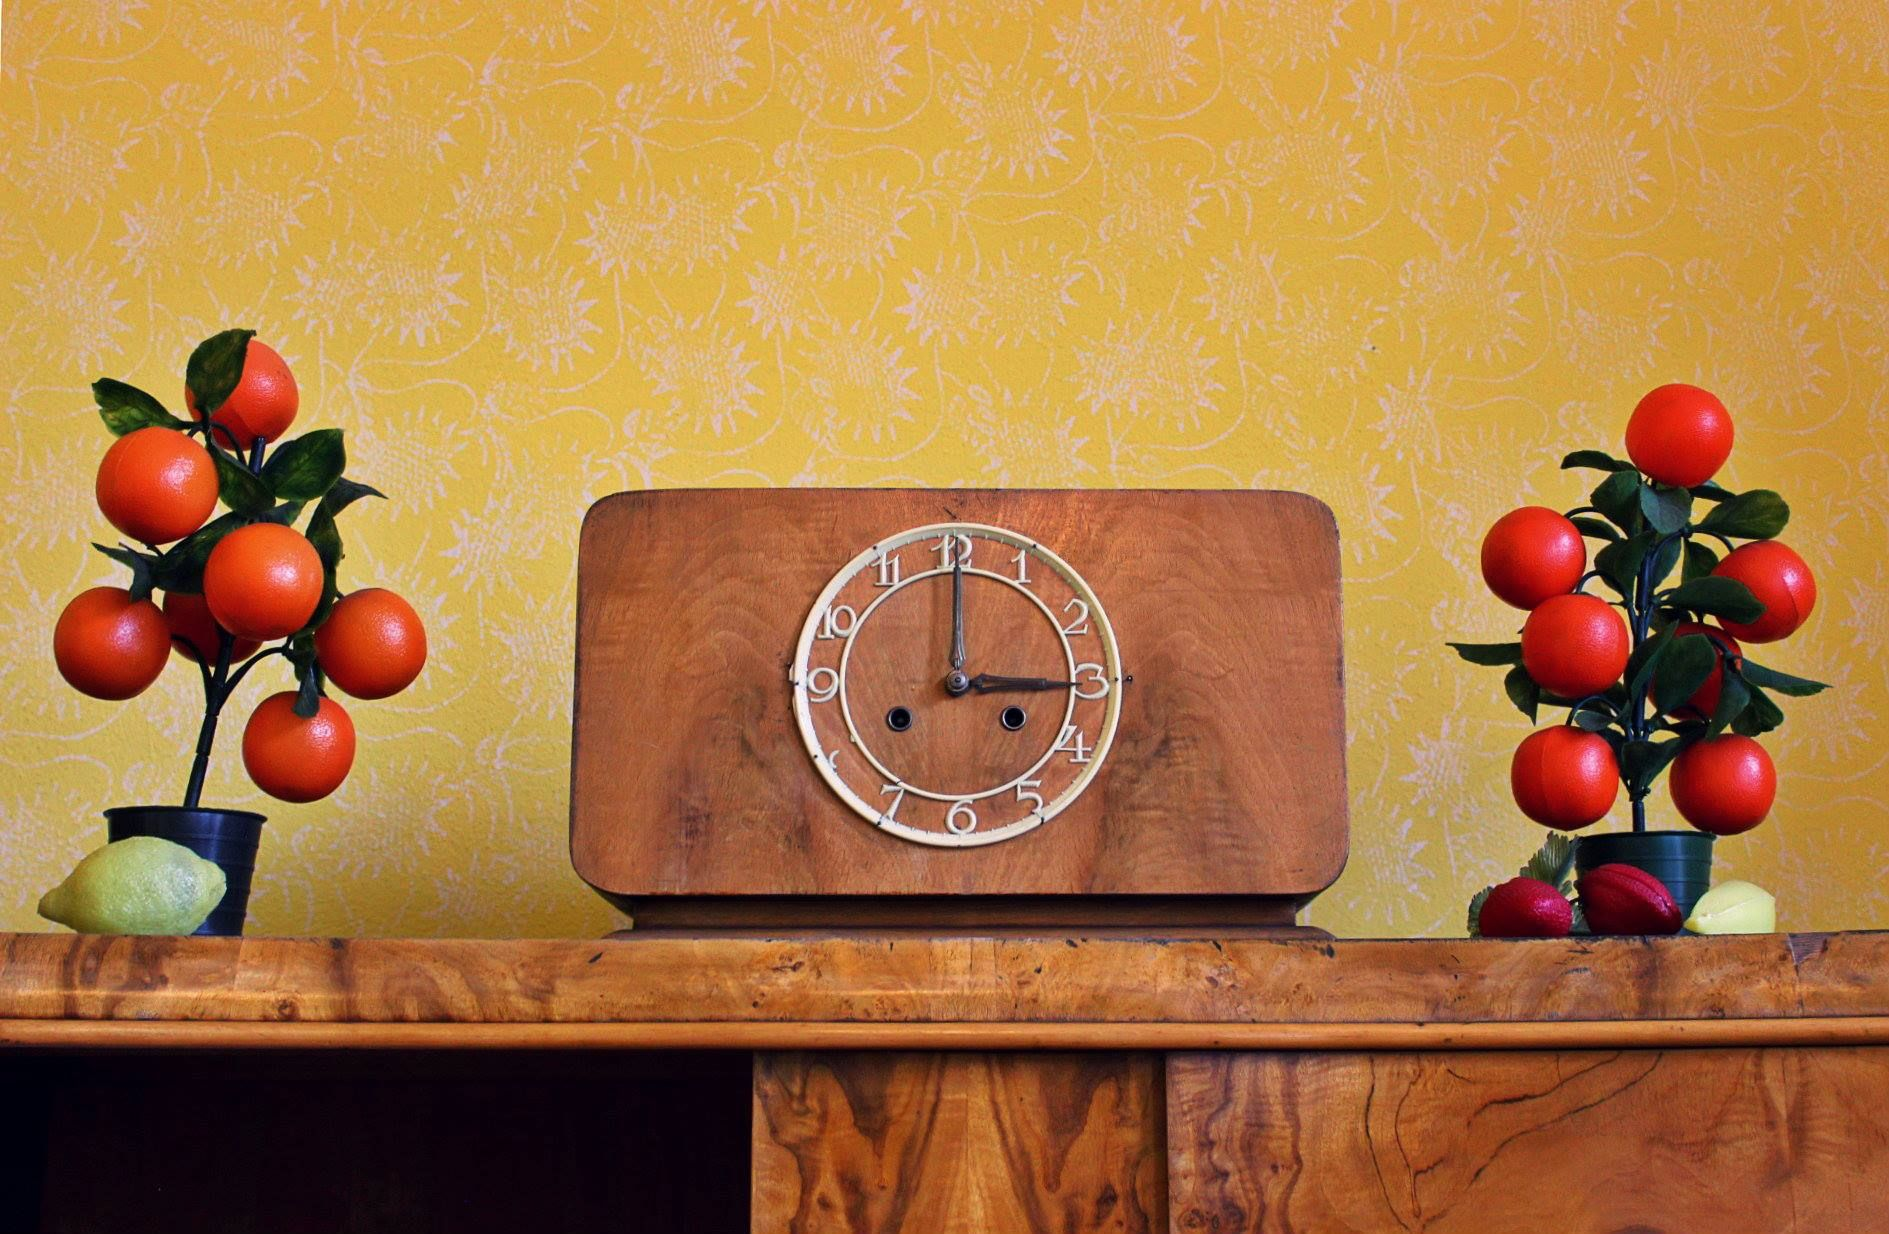 Beautiful clock in typical traditional silesian flat // Reconstruction in Muzeum Historii Katowic #deco #decoration #folk #folklore #traditional #clock #tomato #tomatoes #etno #etnology #silesia #śląsk #zegar #folklor #katowice #pomidory #yellow #brown #orange #retro #vintage #50s